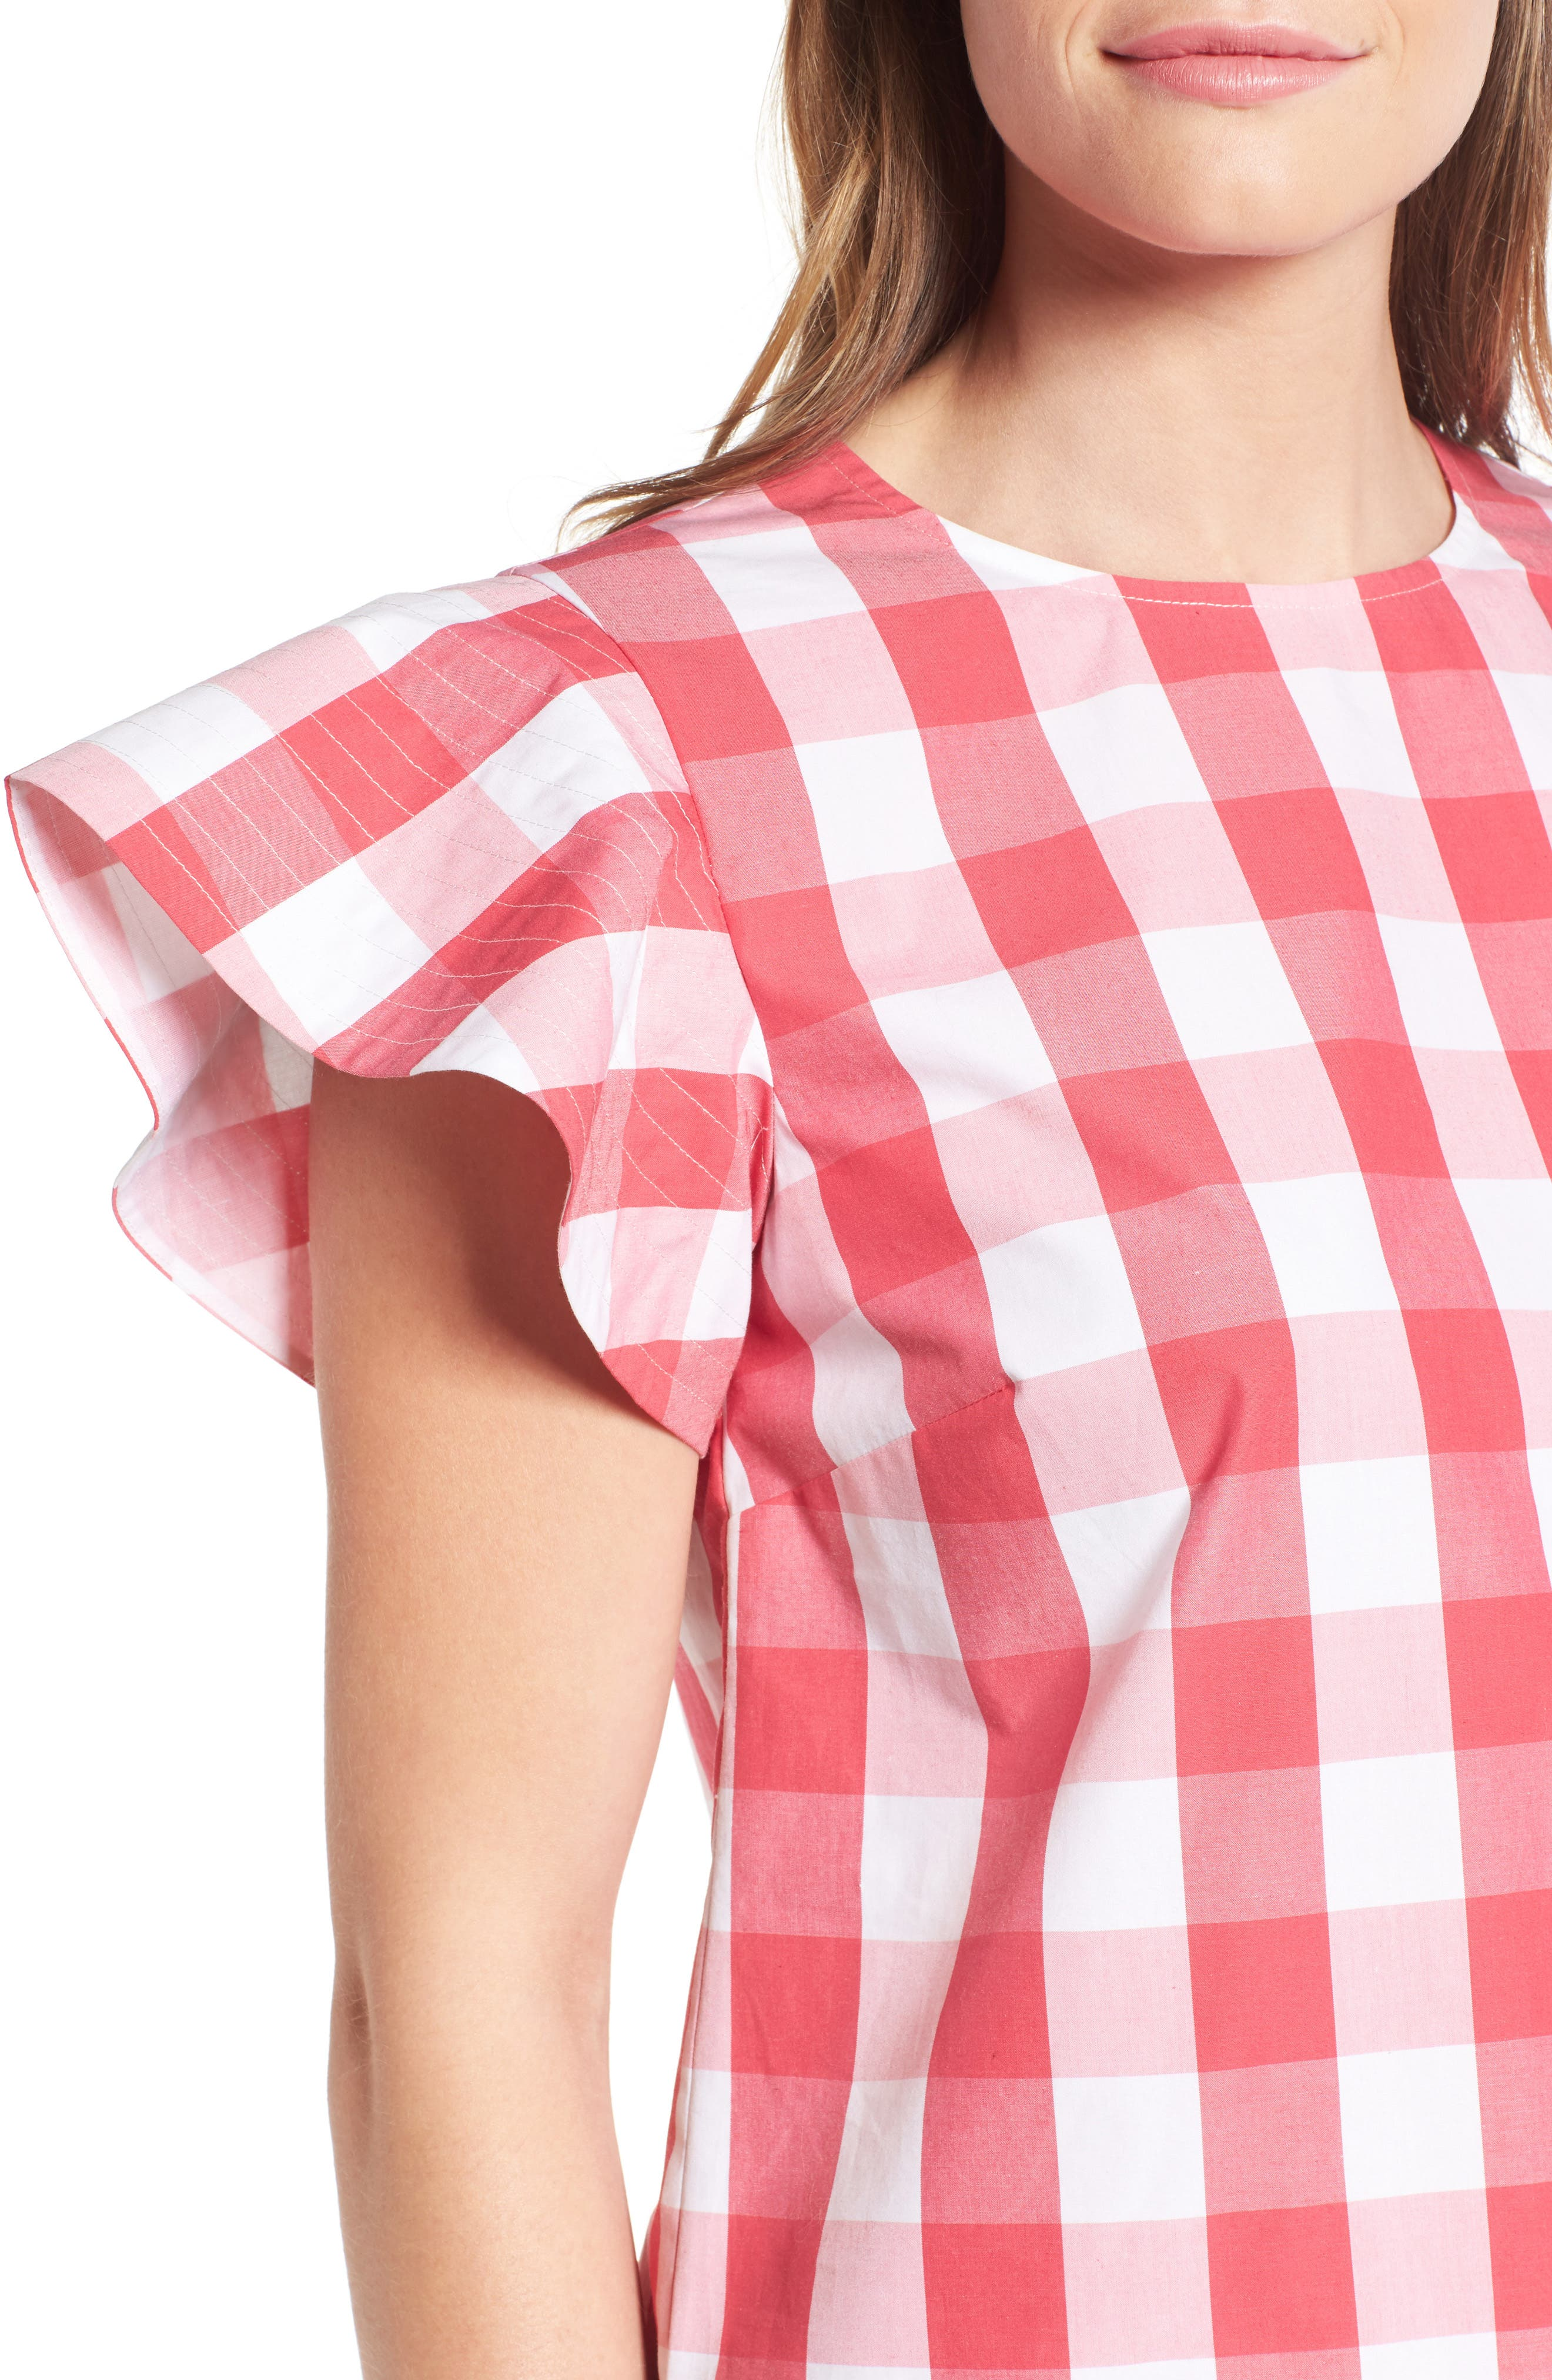 Cloister Gingham Cotton Top,                             Alternate thumbnail 8, color,